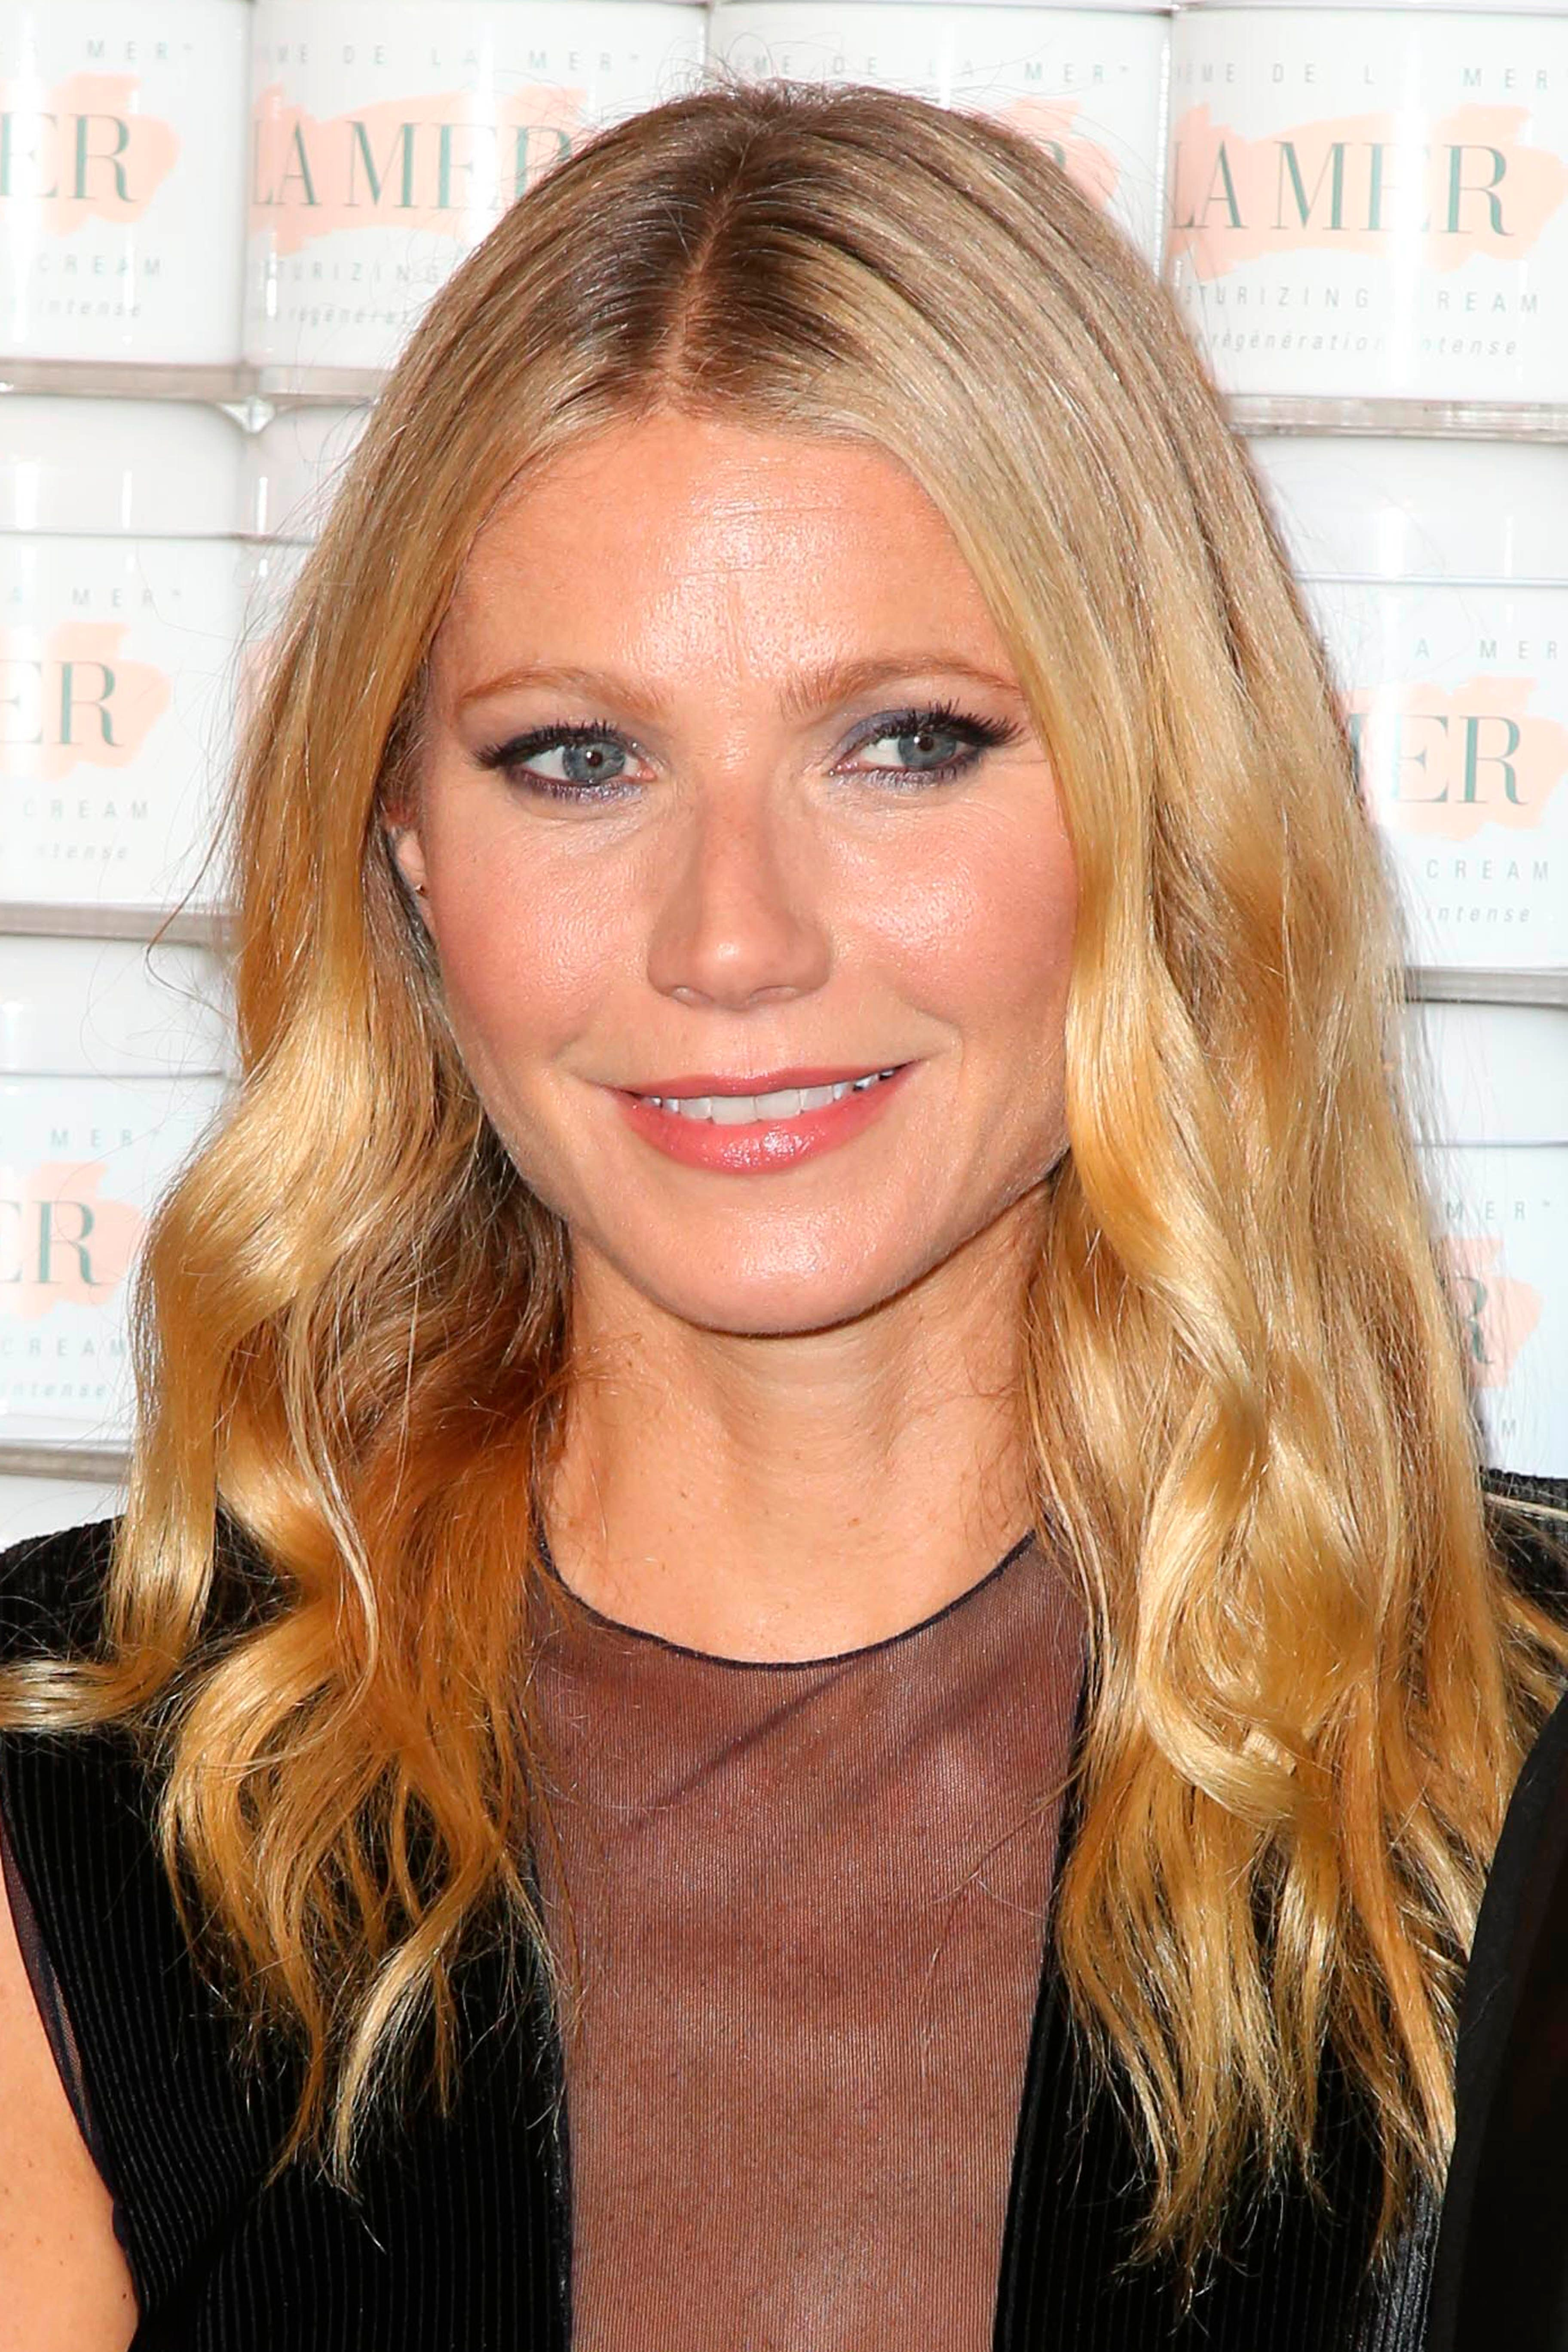 Paltrow said that menopause needs rebranding, and that we lack examples of 'aspirational' menopausal